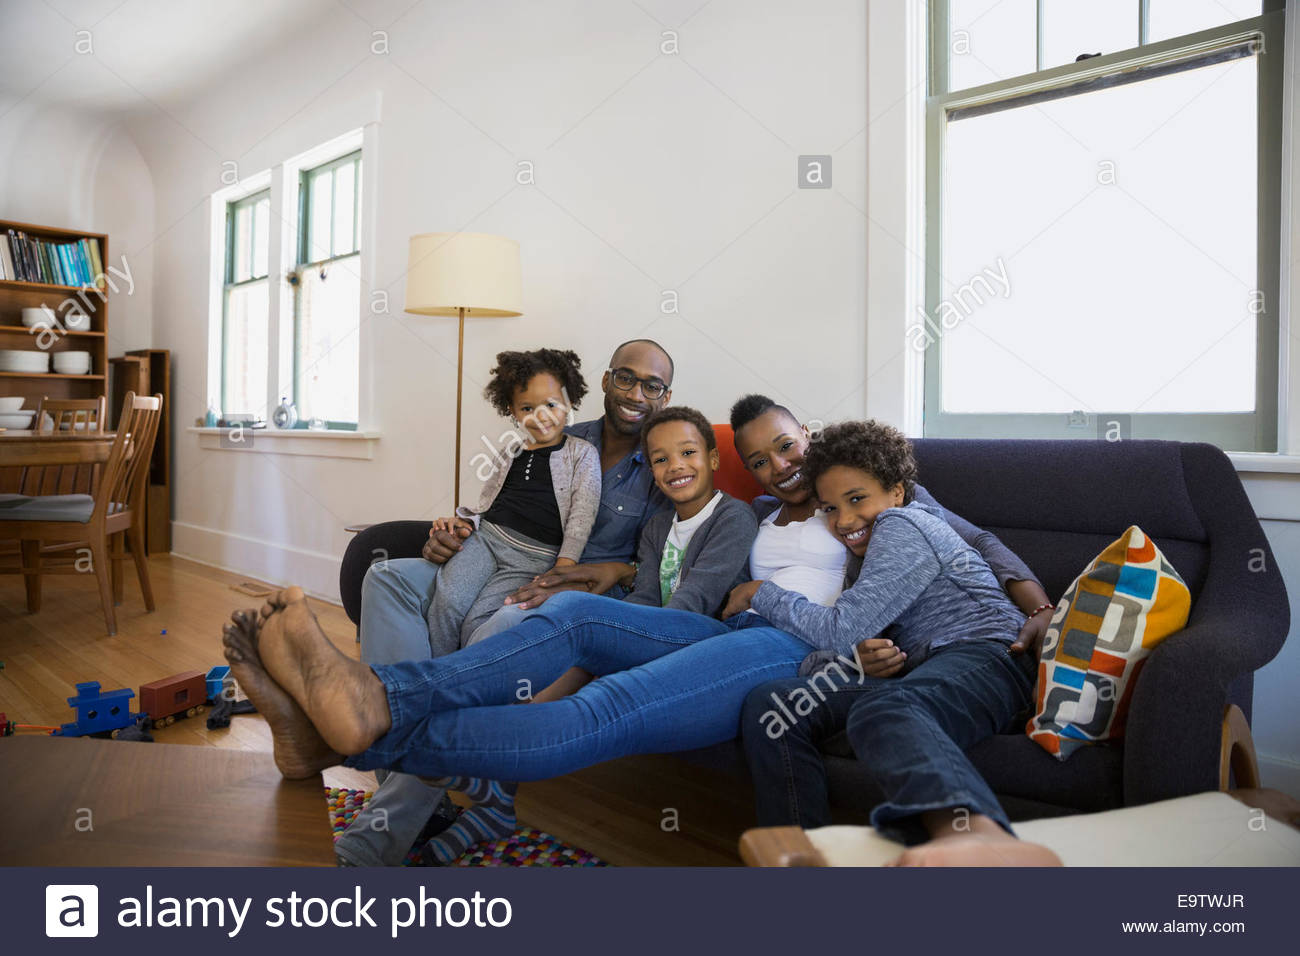 Portrait of smiling family on living room sofa - Stock Image